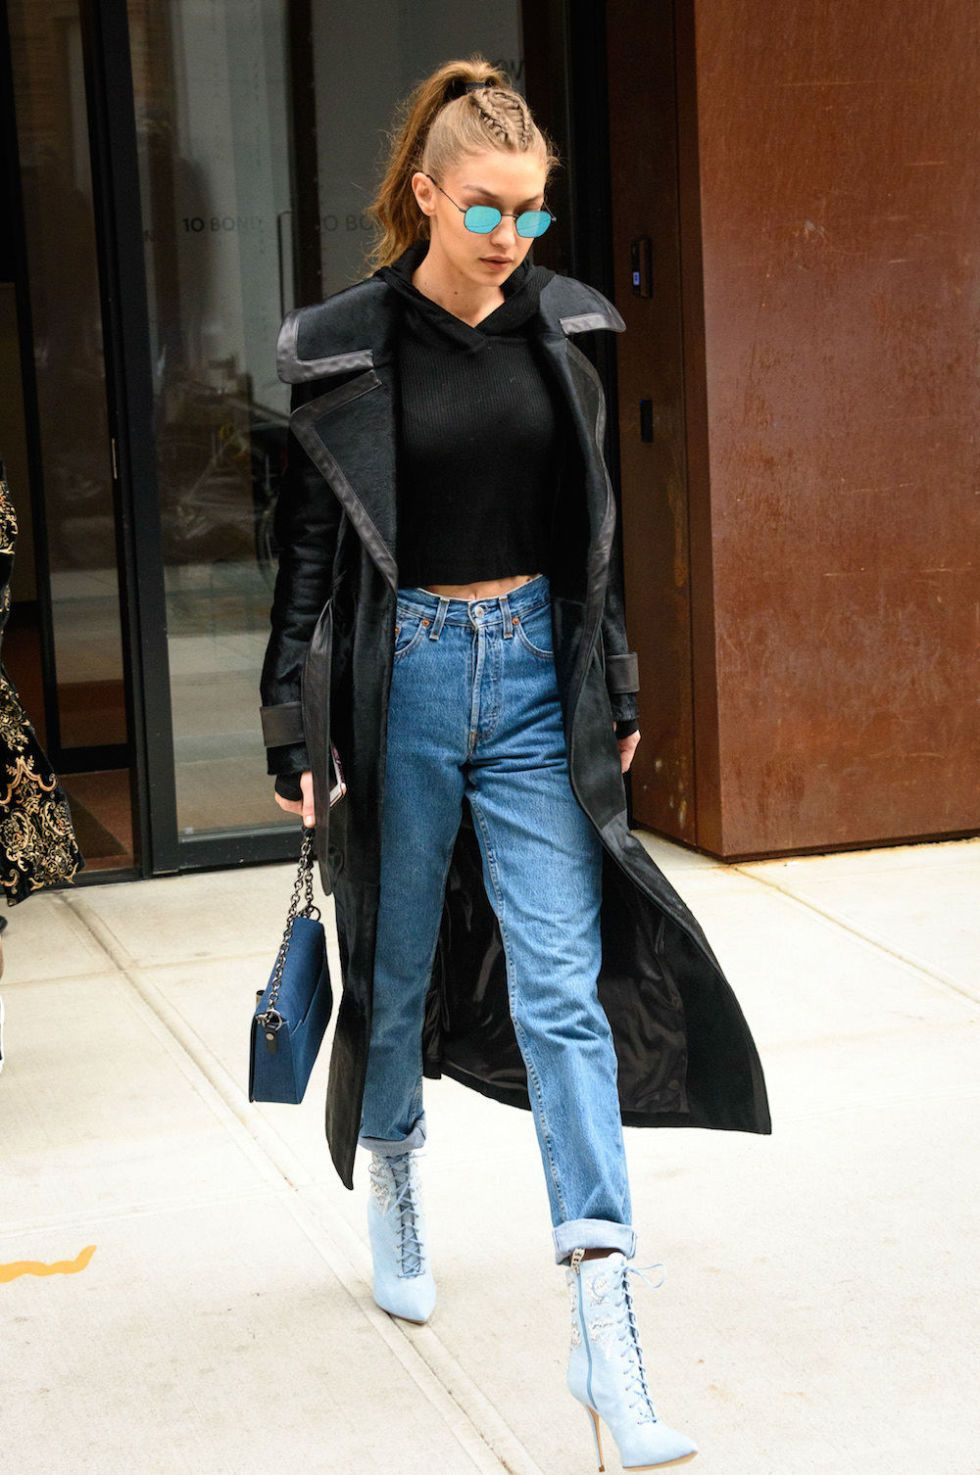 26 Most Popular Fashion Trends of 2016 — Best Fashion of the